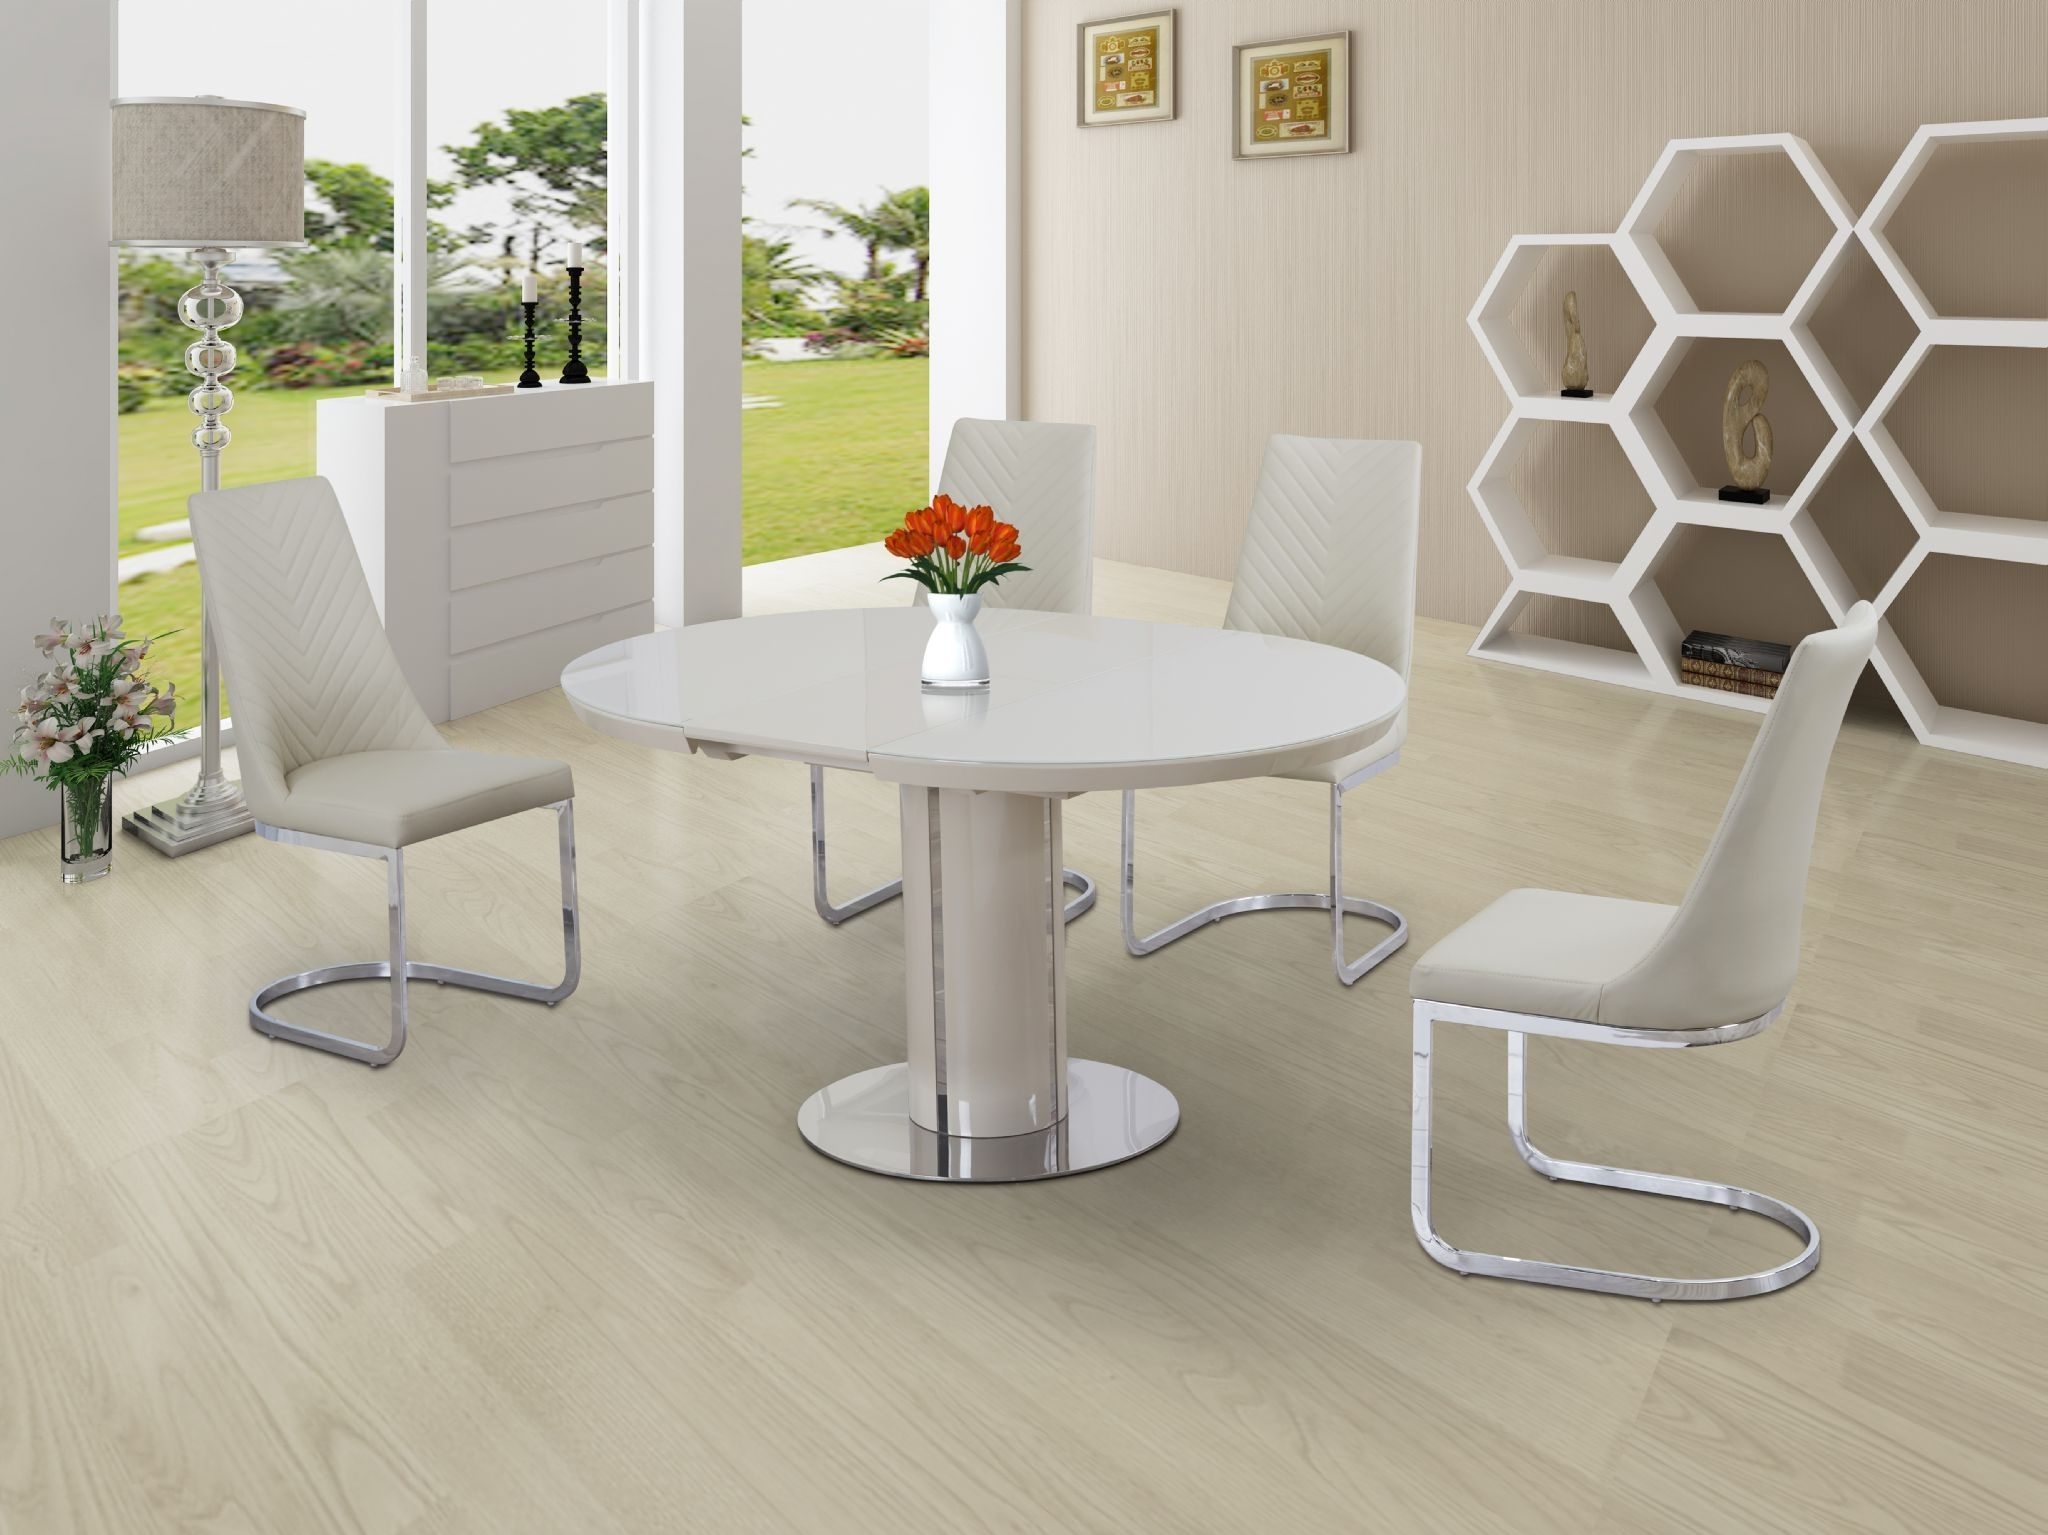 Famous Cream And Wood Dining Tables Pertaining To Buy Cream Small Round Extendable Dining Table Today (View 19 of 25)